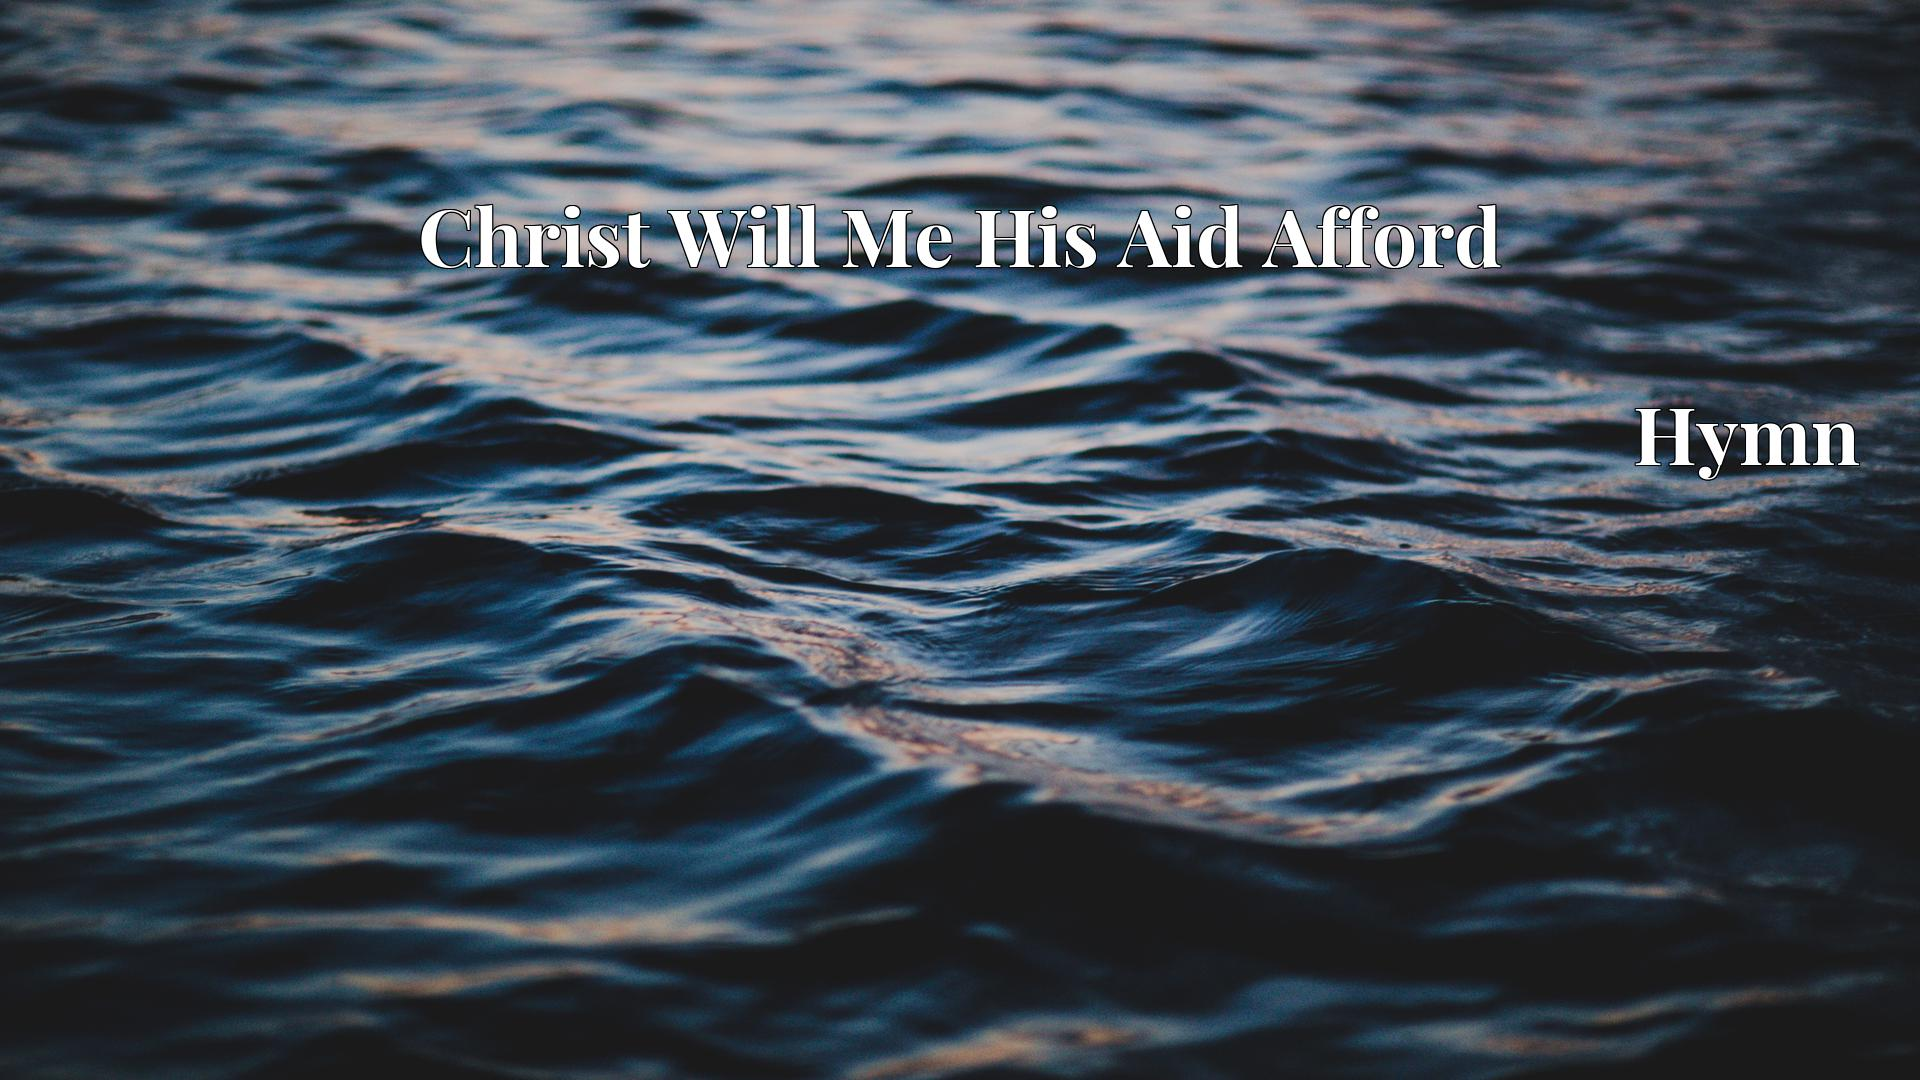 Christ Will Me His Aid Afford - Hymn